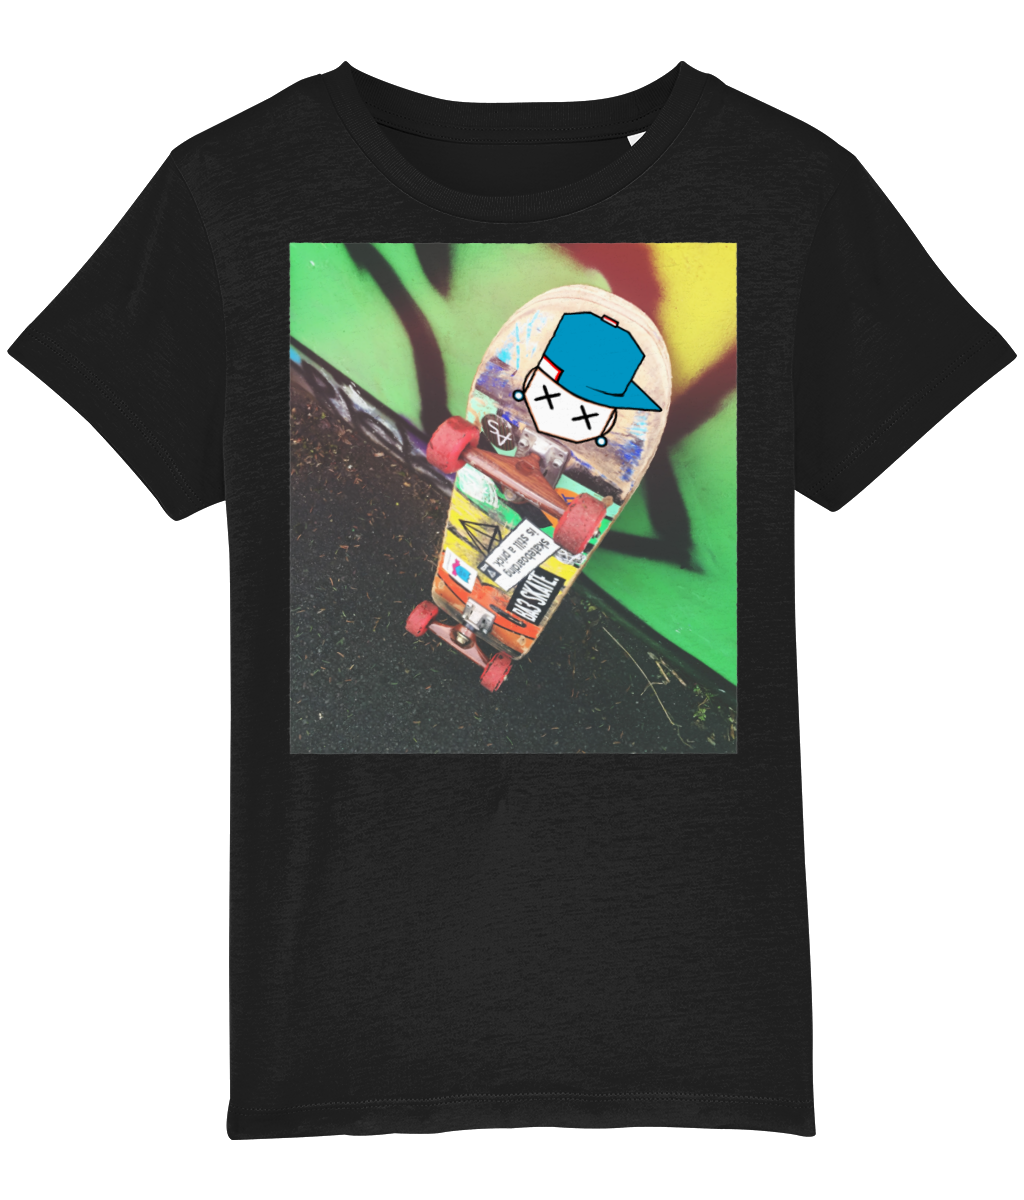 kids t'shirt Mini Creator G15a